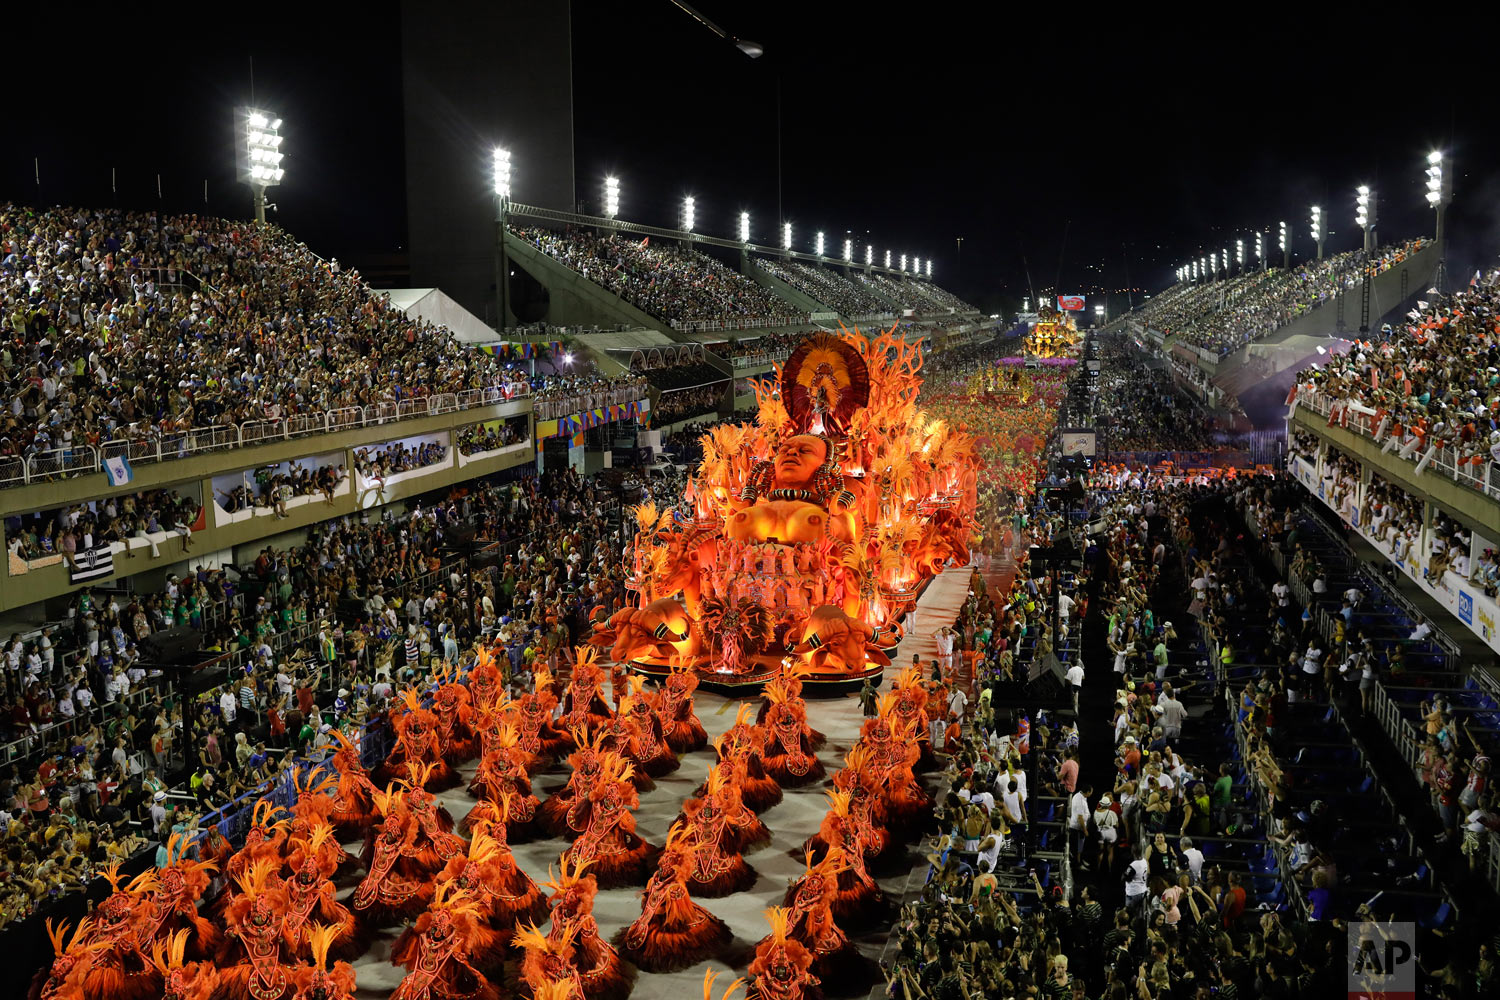 The Salgueiro samba school parades through the Sambadrome during Carnival celebrations in Rio de Janeiro, Brazil, early Tuesday, Feb. 13, 2018. (AP Photo/Leo Correa)